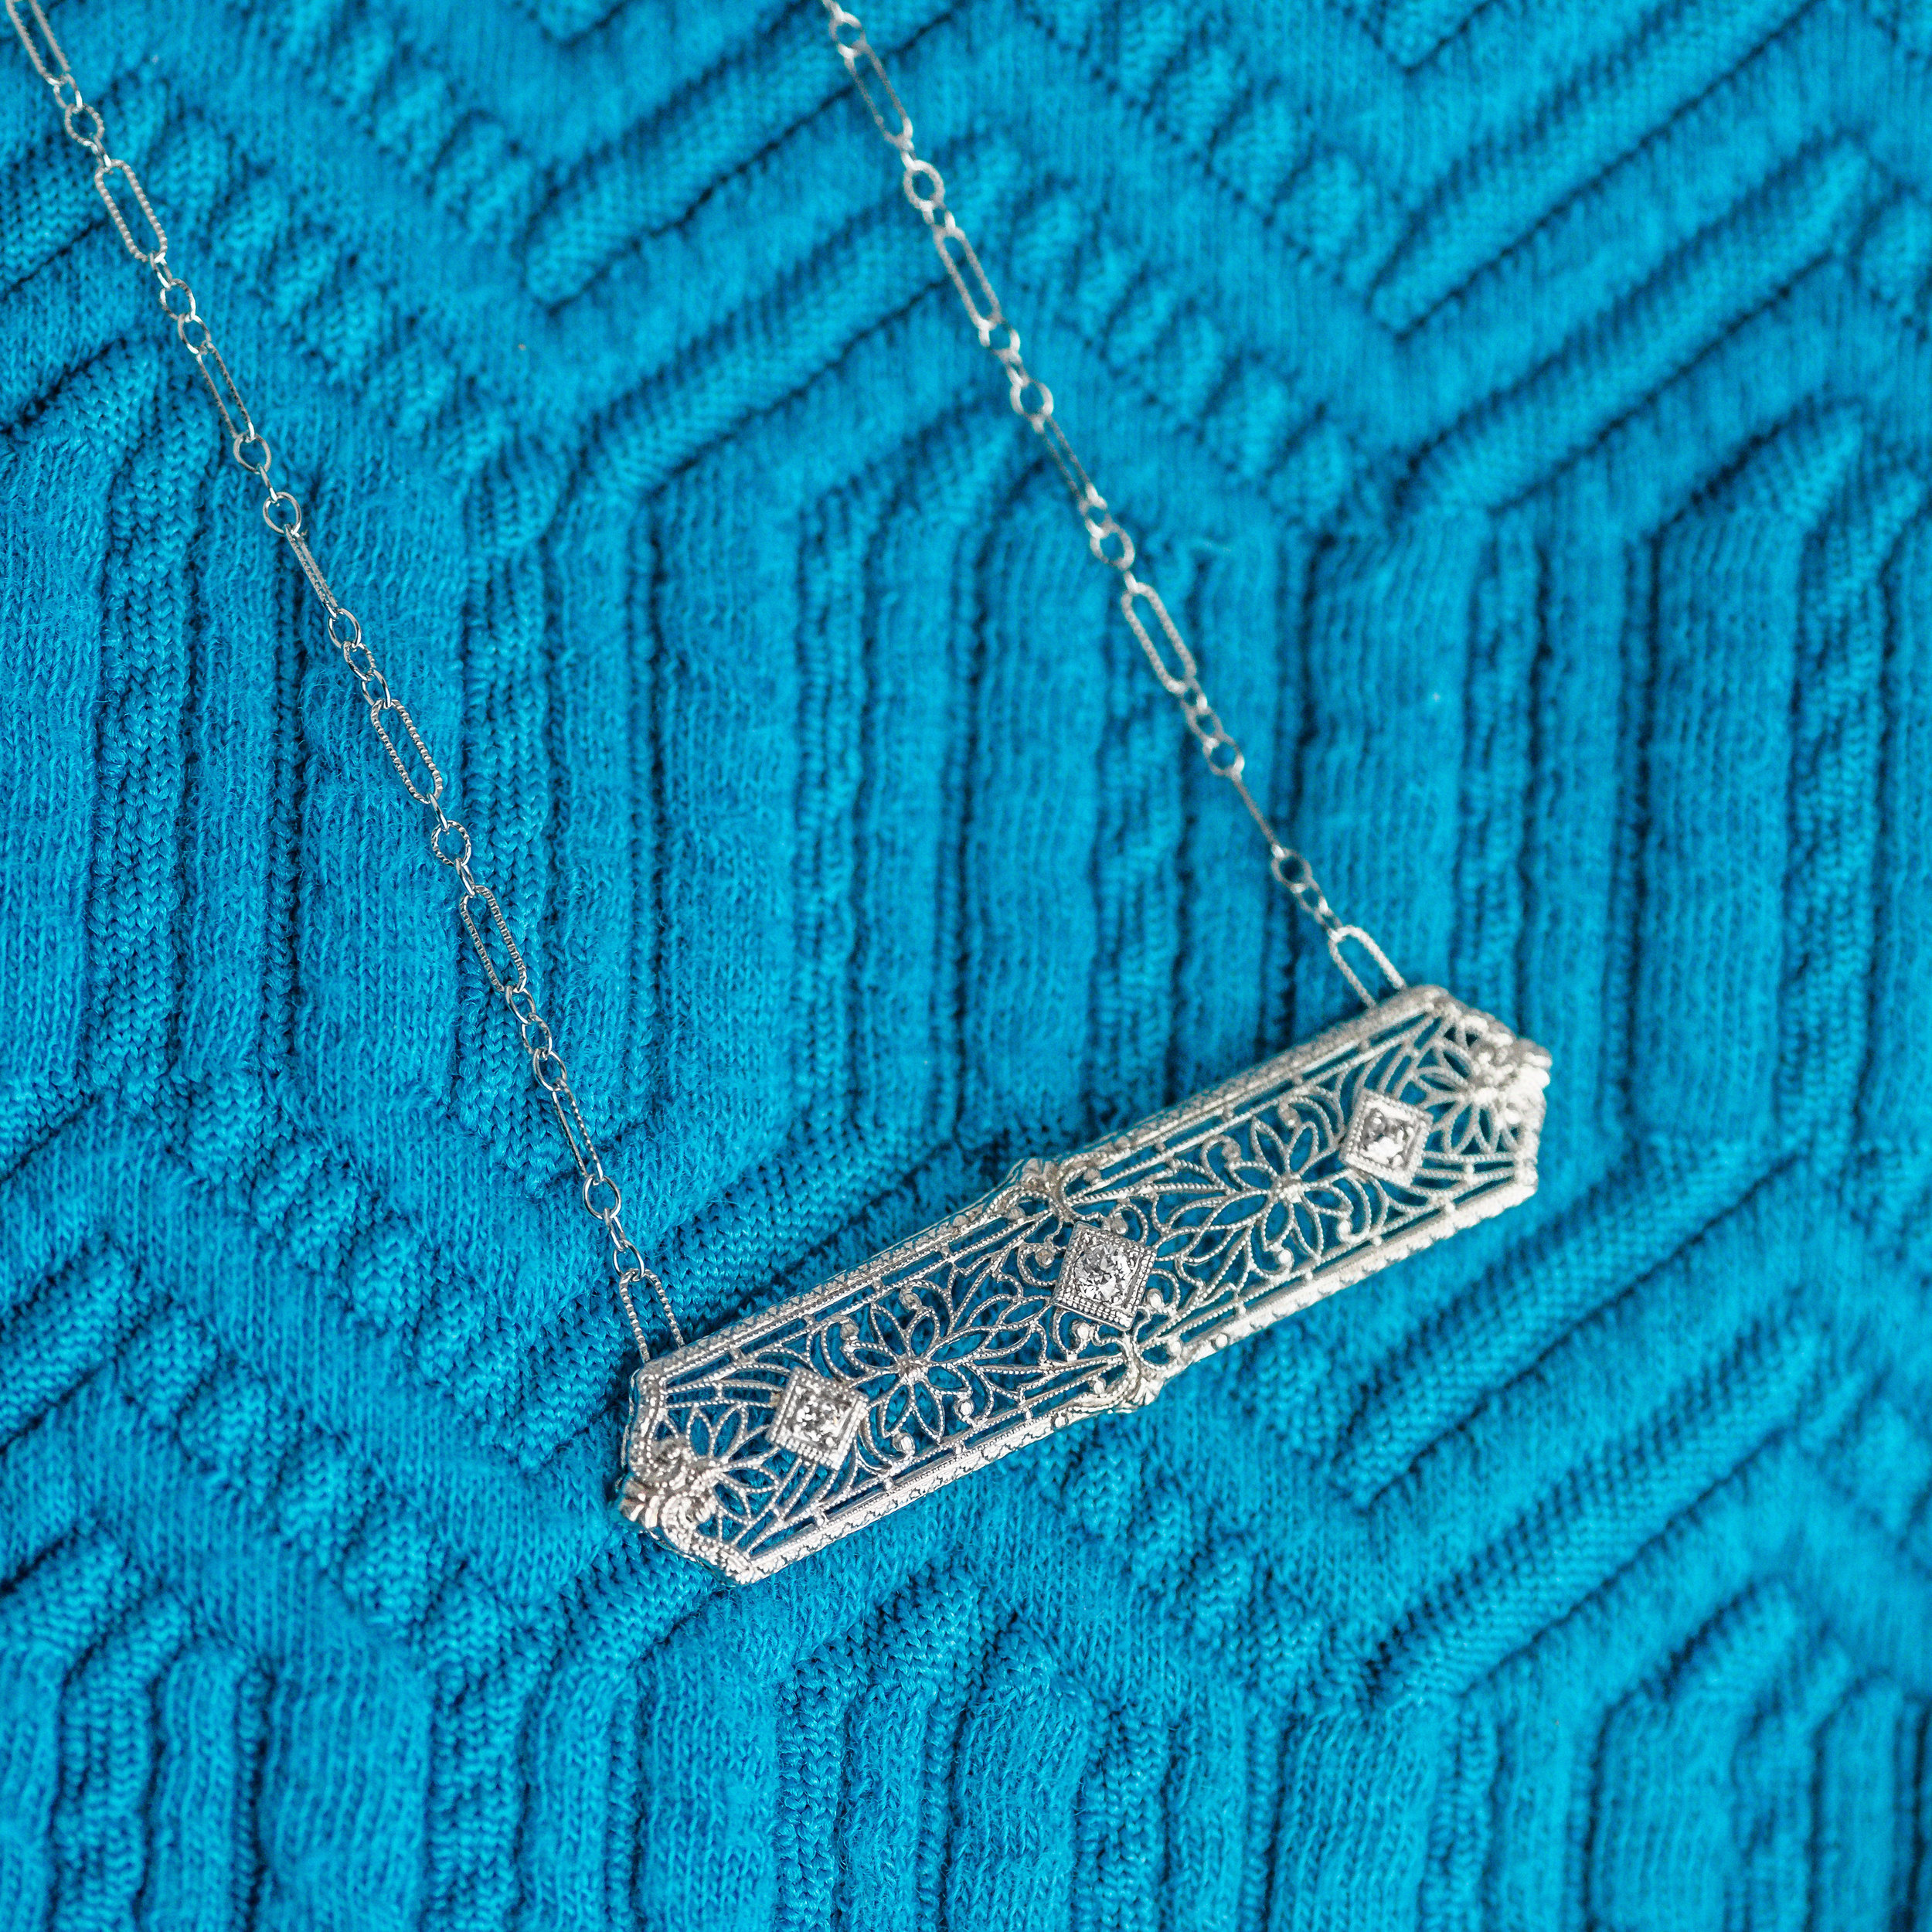 From Pin to Pendant. We love repurposing these Art Deco beauties! Shop this gorgeous Art Deco Pendant  HERE .